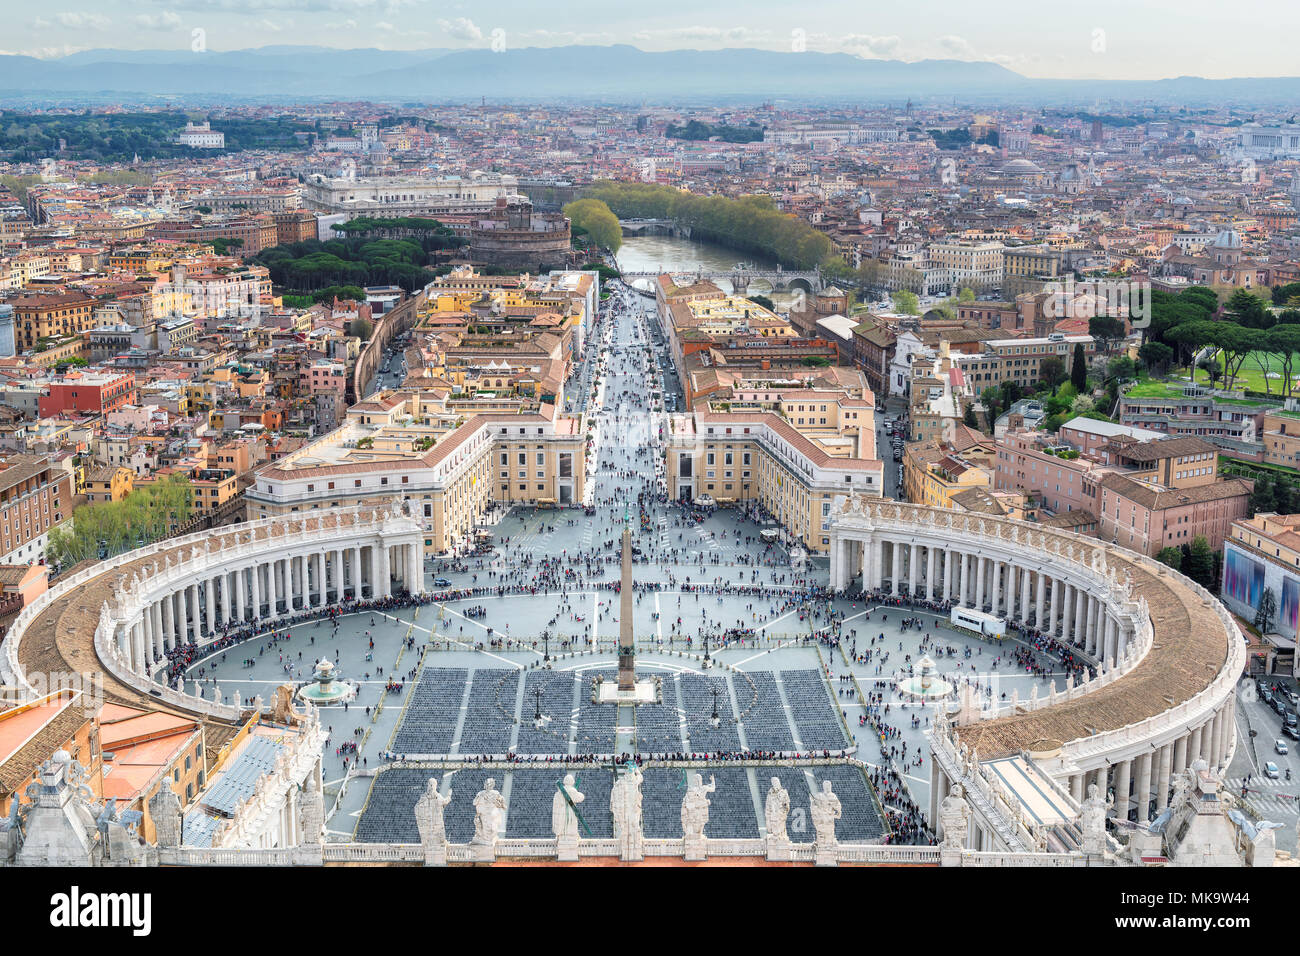 Rome skyline - Saint Peter's Square in Vatican, Rome, Italy. - Stock Image